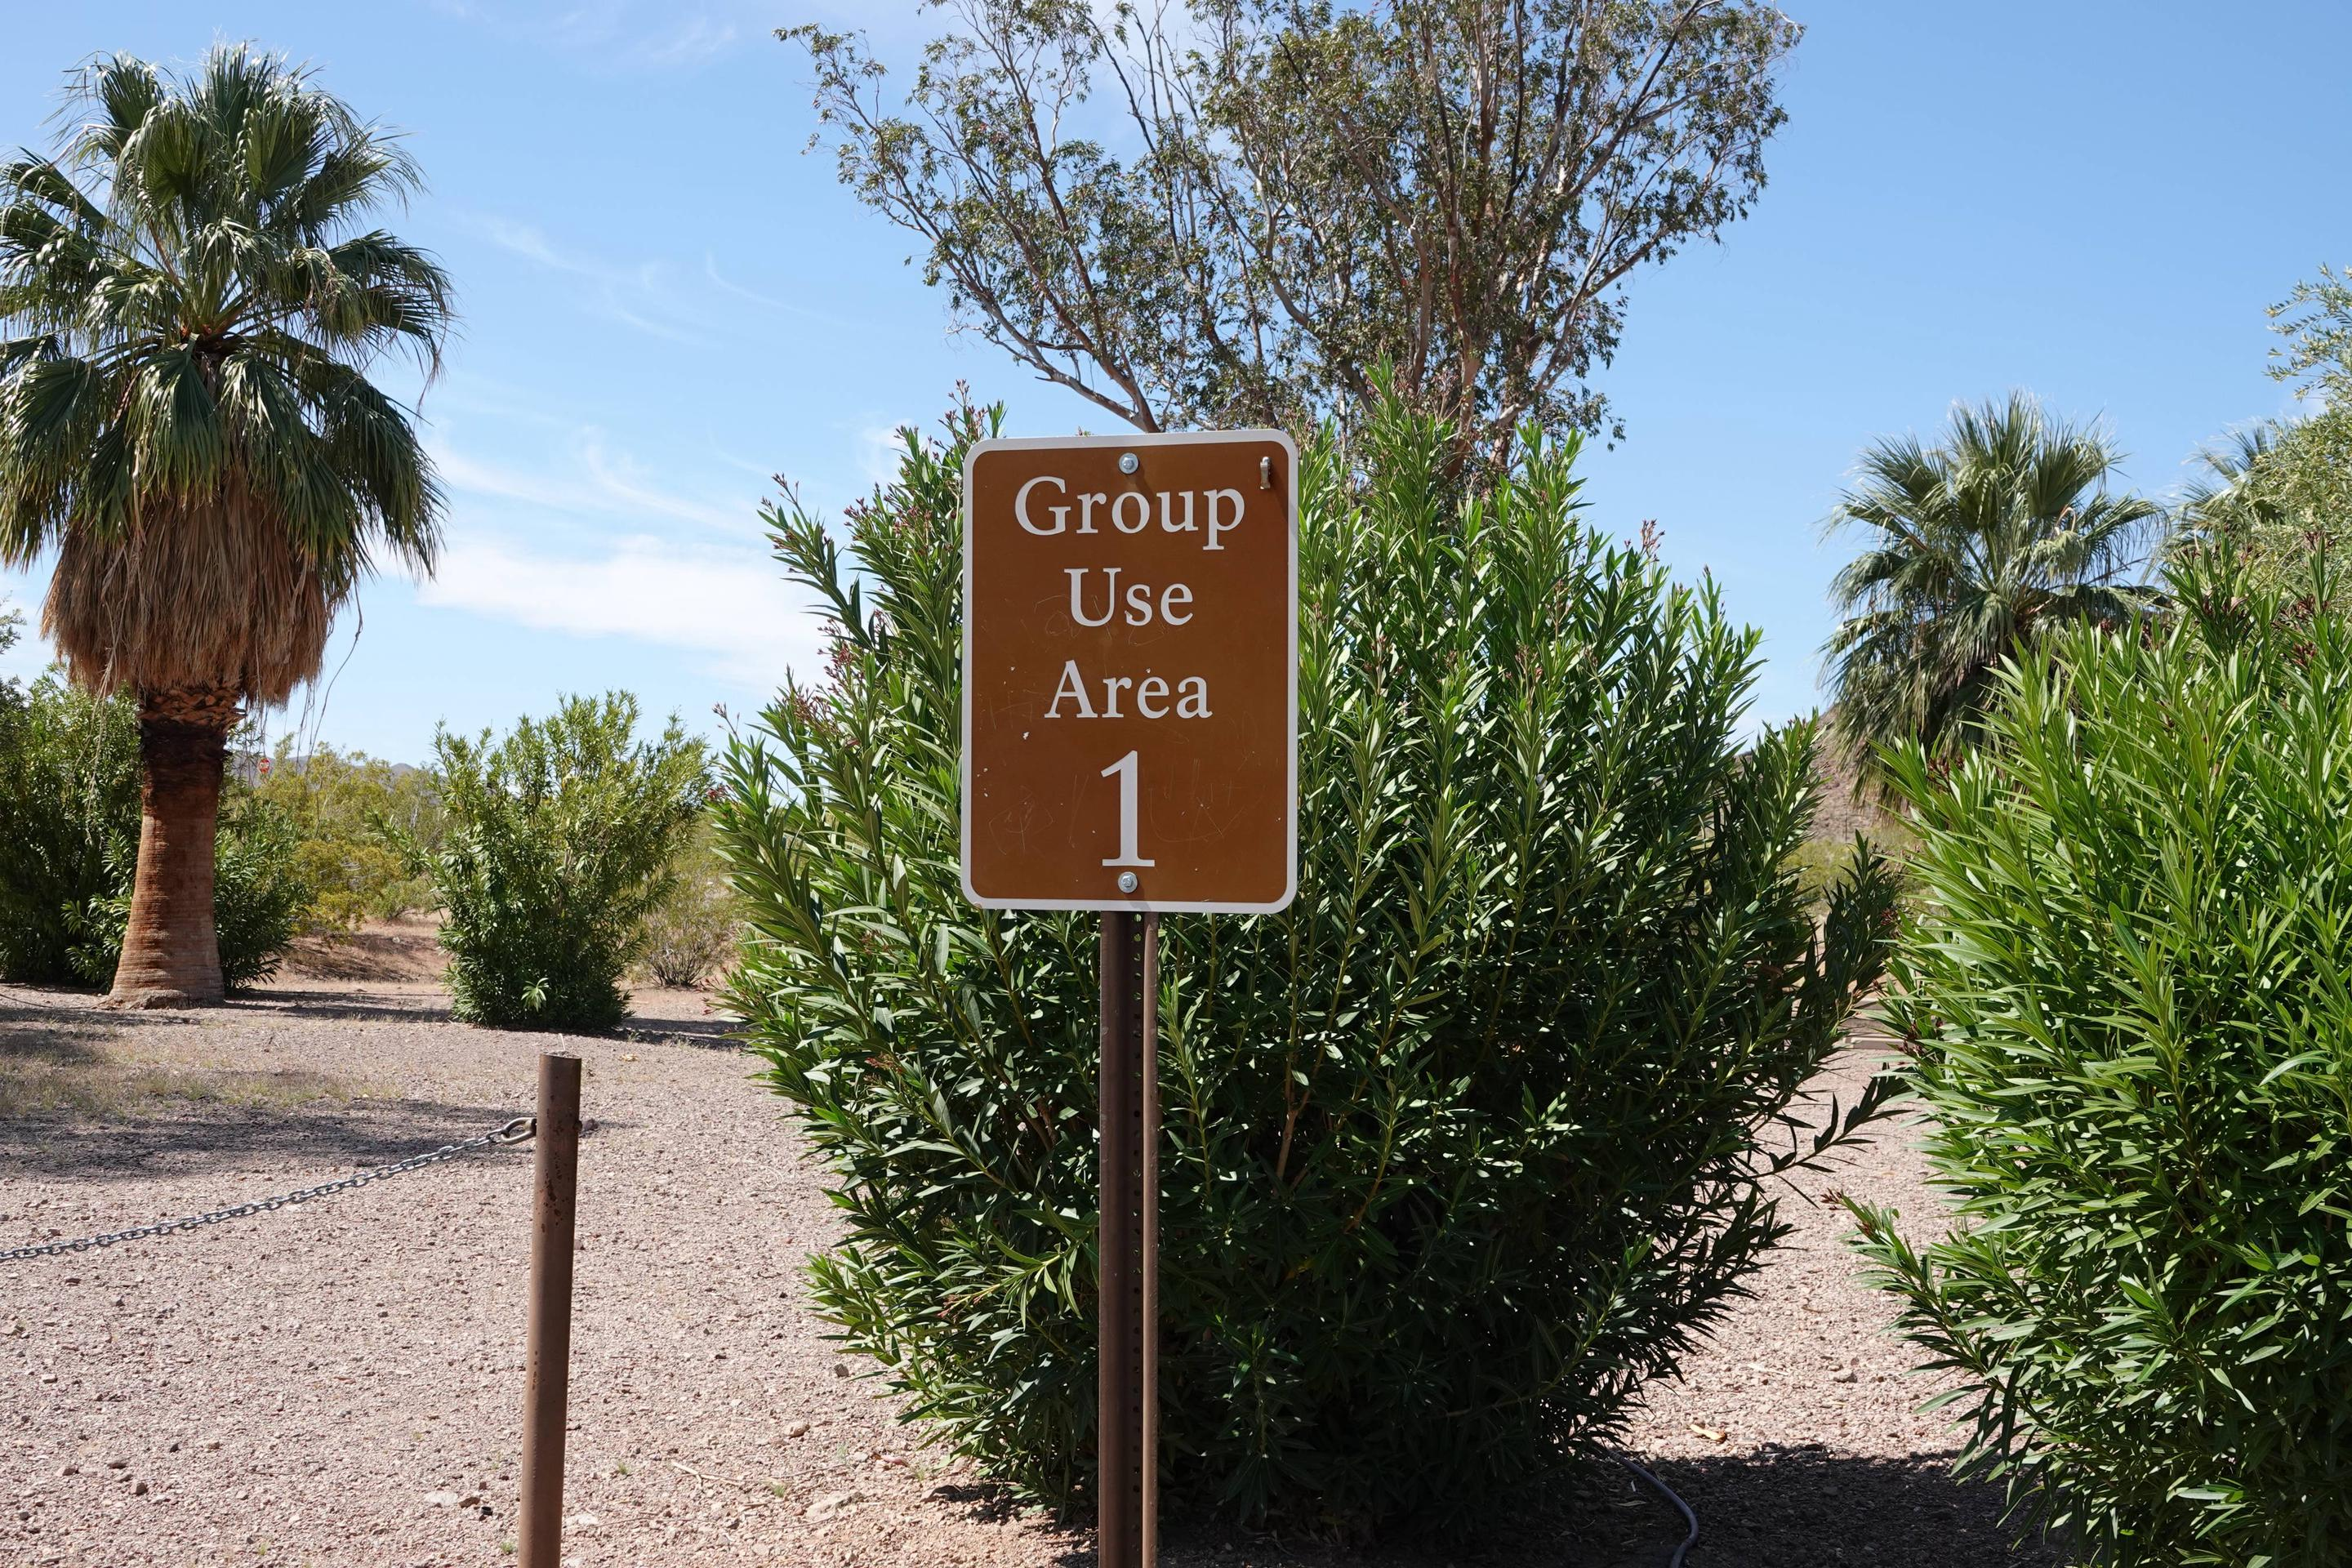 Campsite sign 1 located in a desert settingBoulder Beach Group Site 1